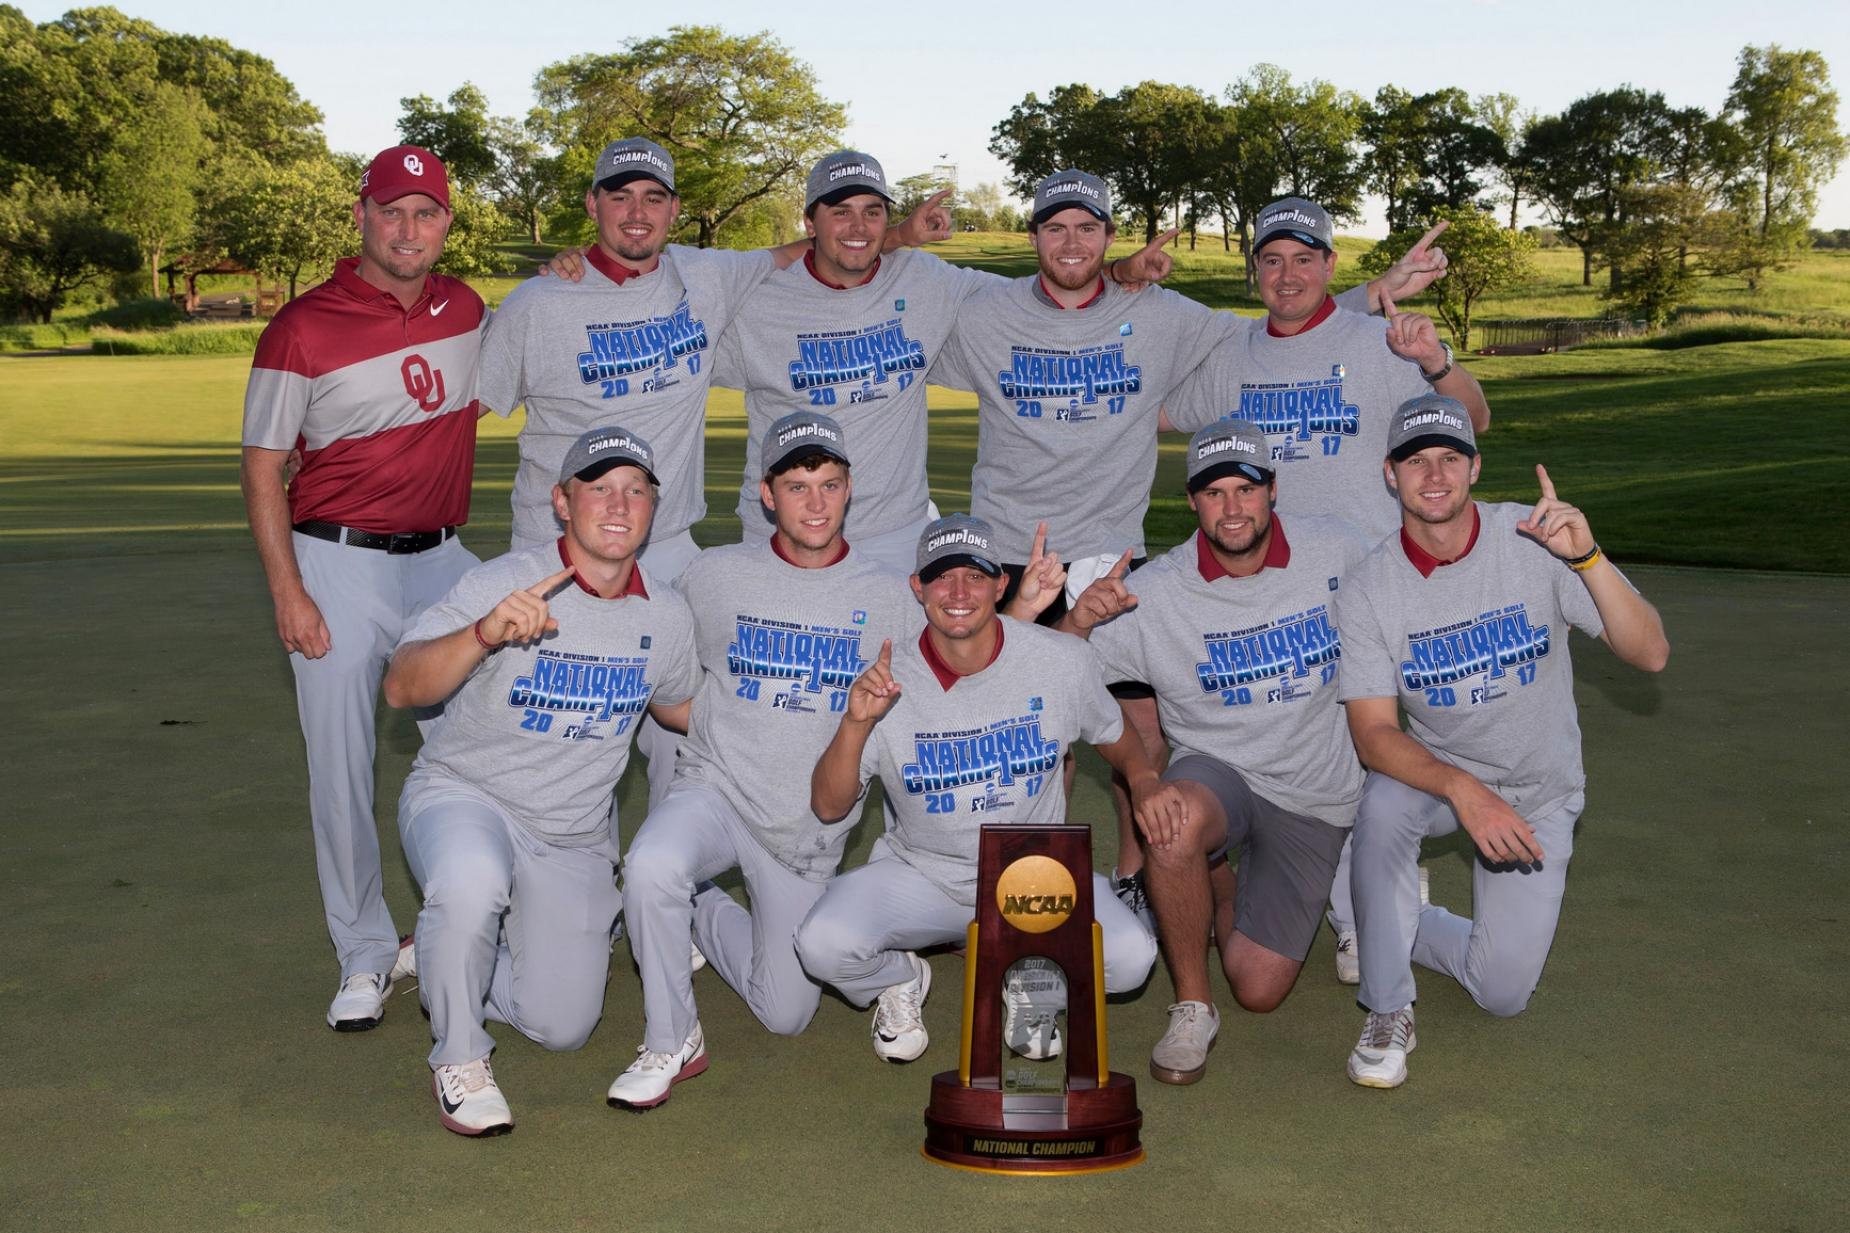 oklahoma-team-ncaa-2017-trophy-shot.jpg